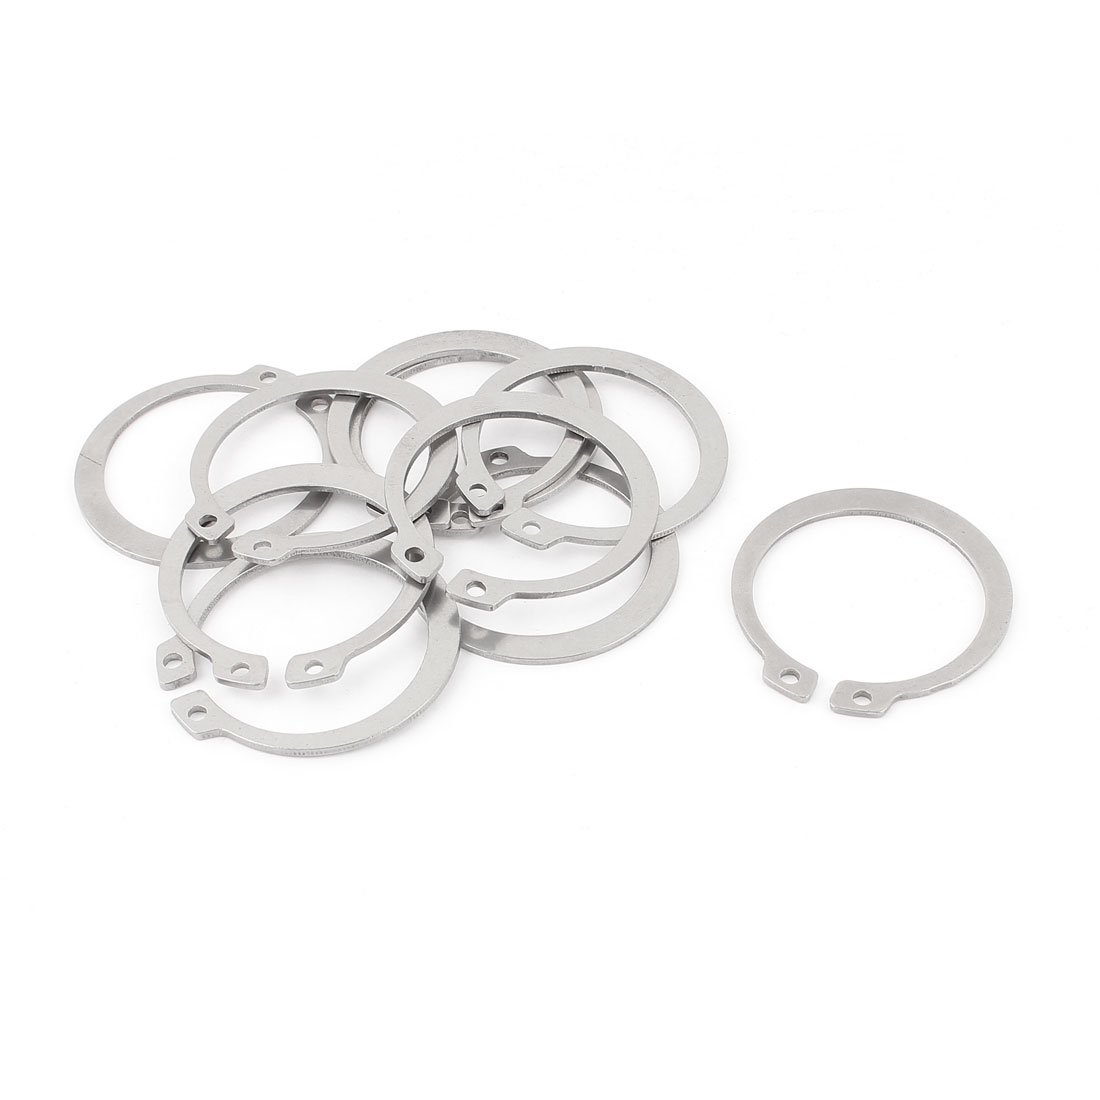 10pcs 304 Stainless Steel External Circlip Retaining Shaft Snap Rings 38mm